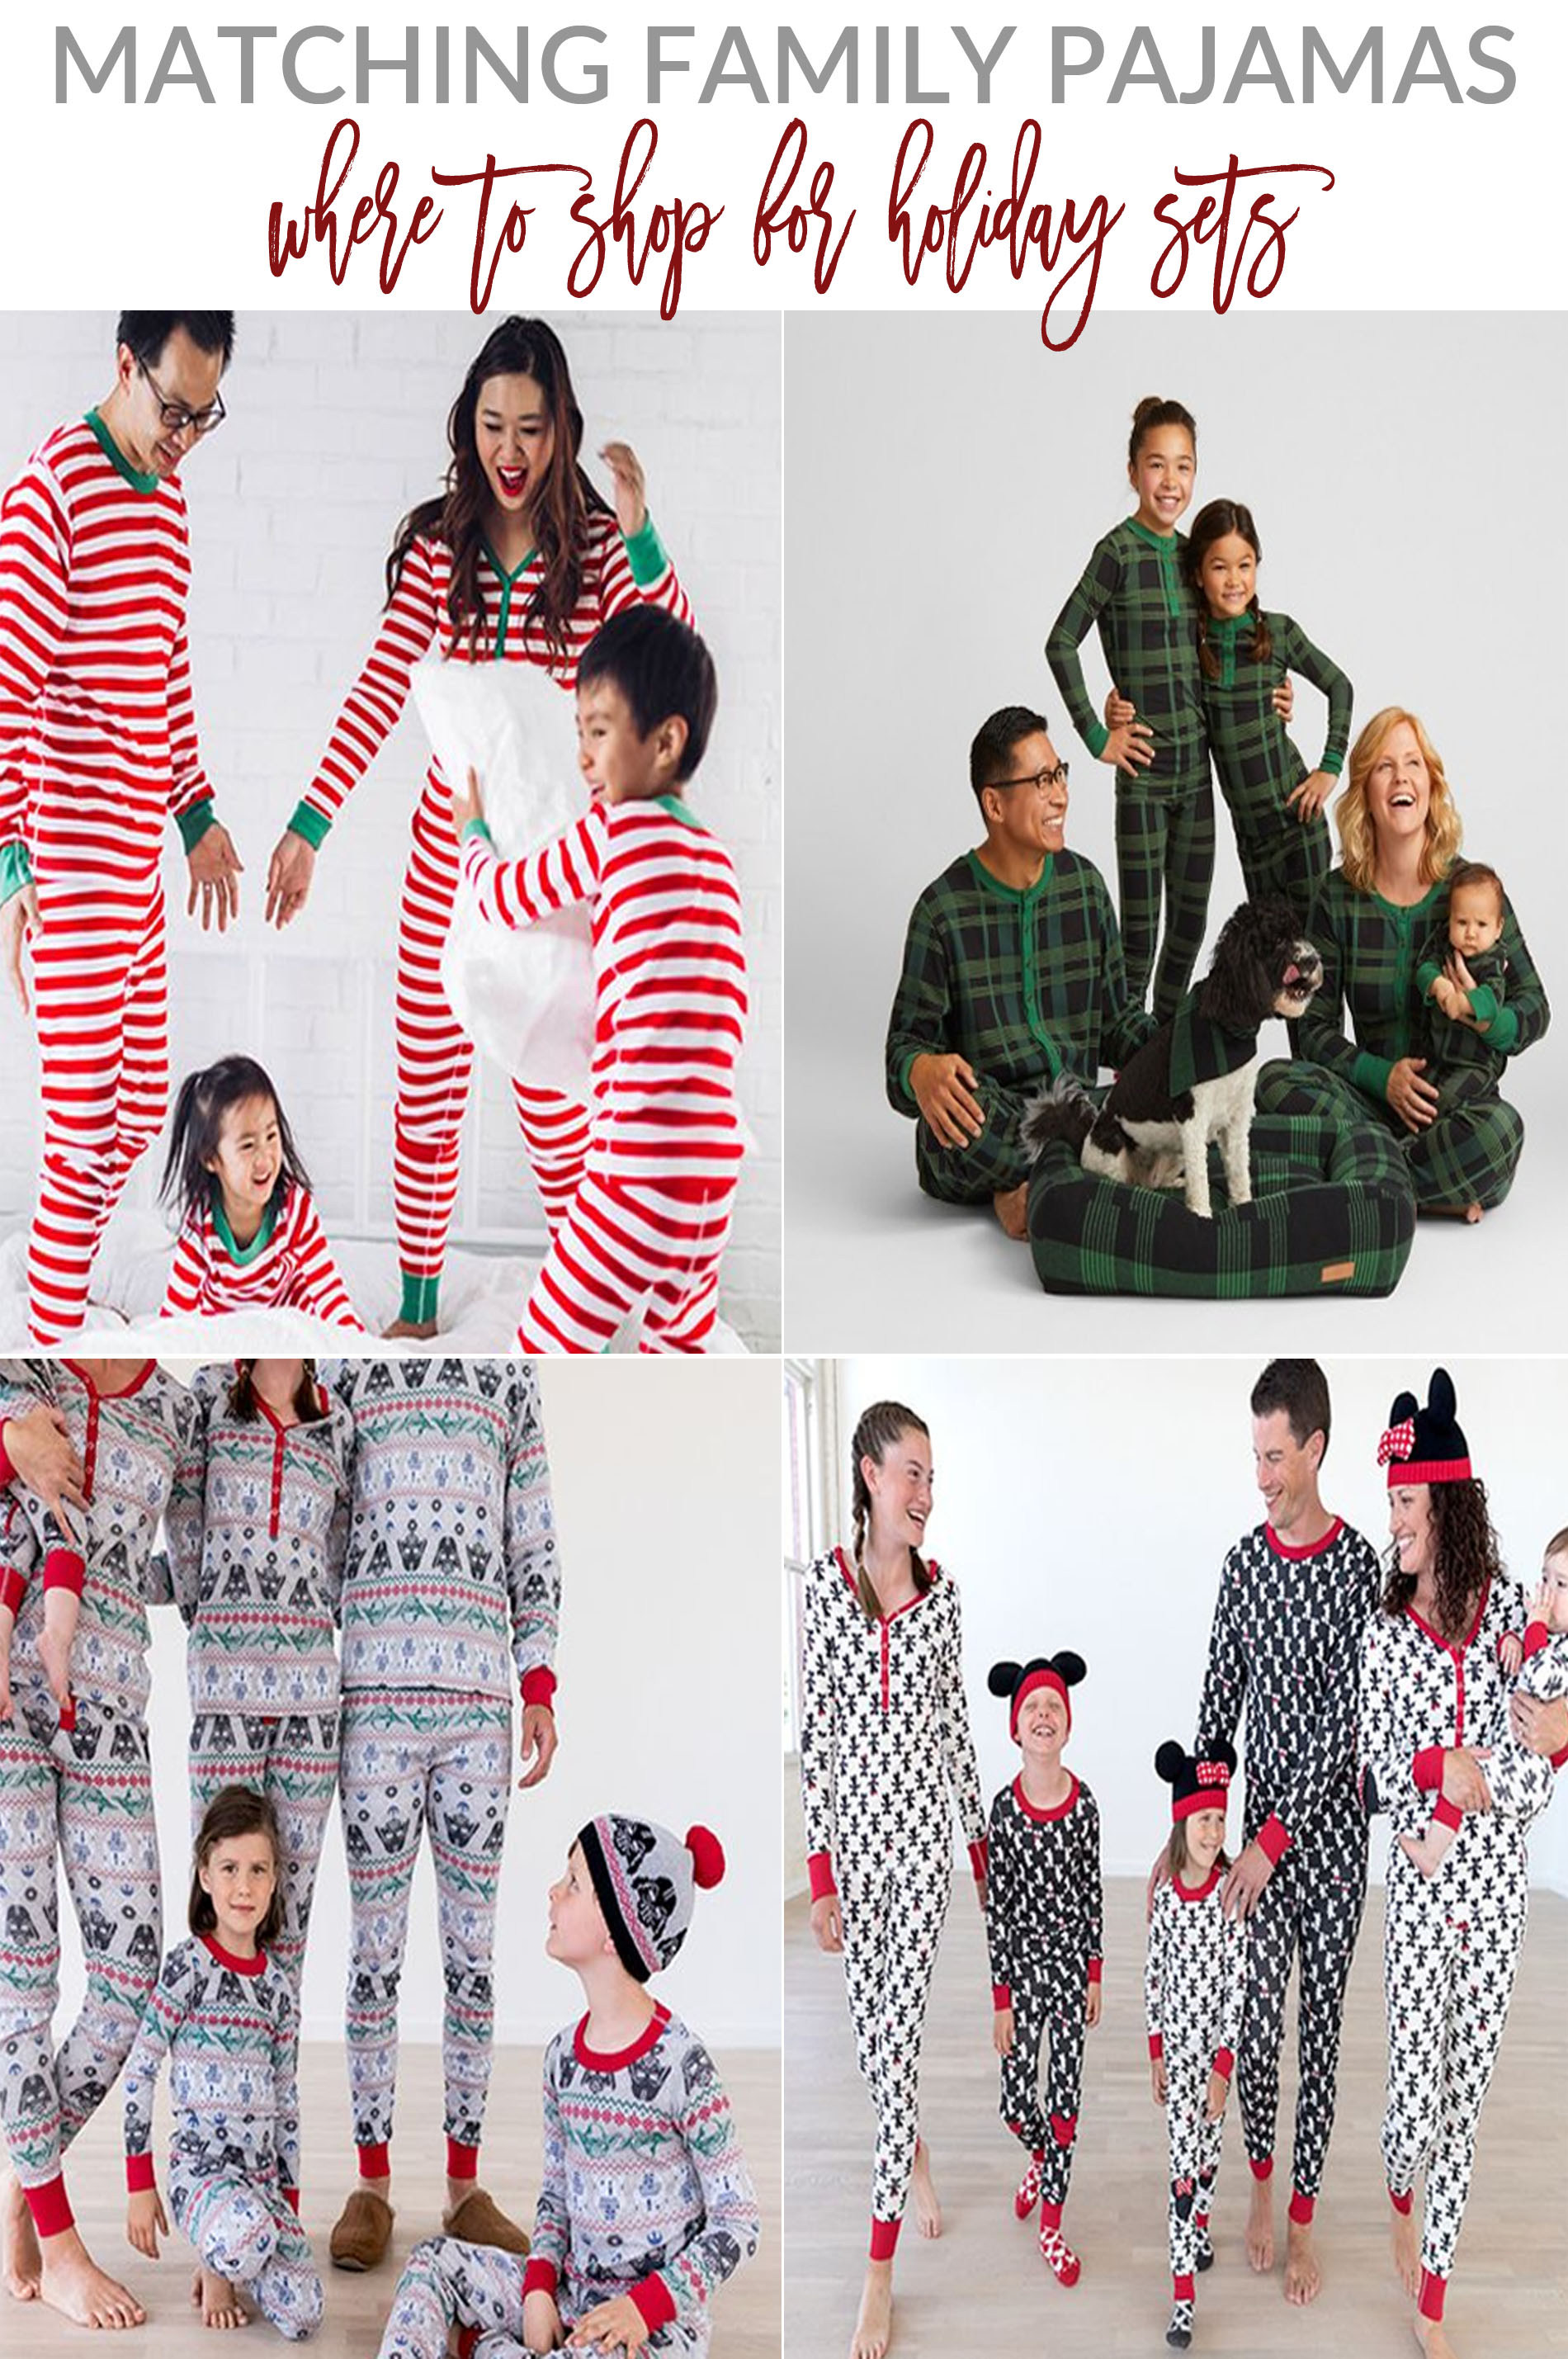 732d26134 Matching Family Pajamas